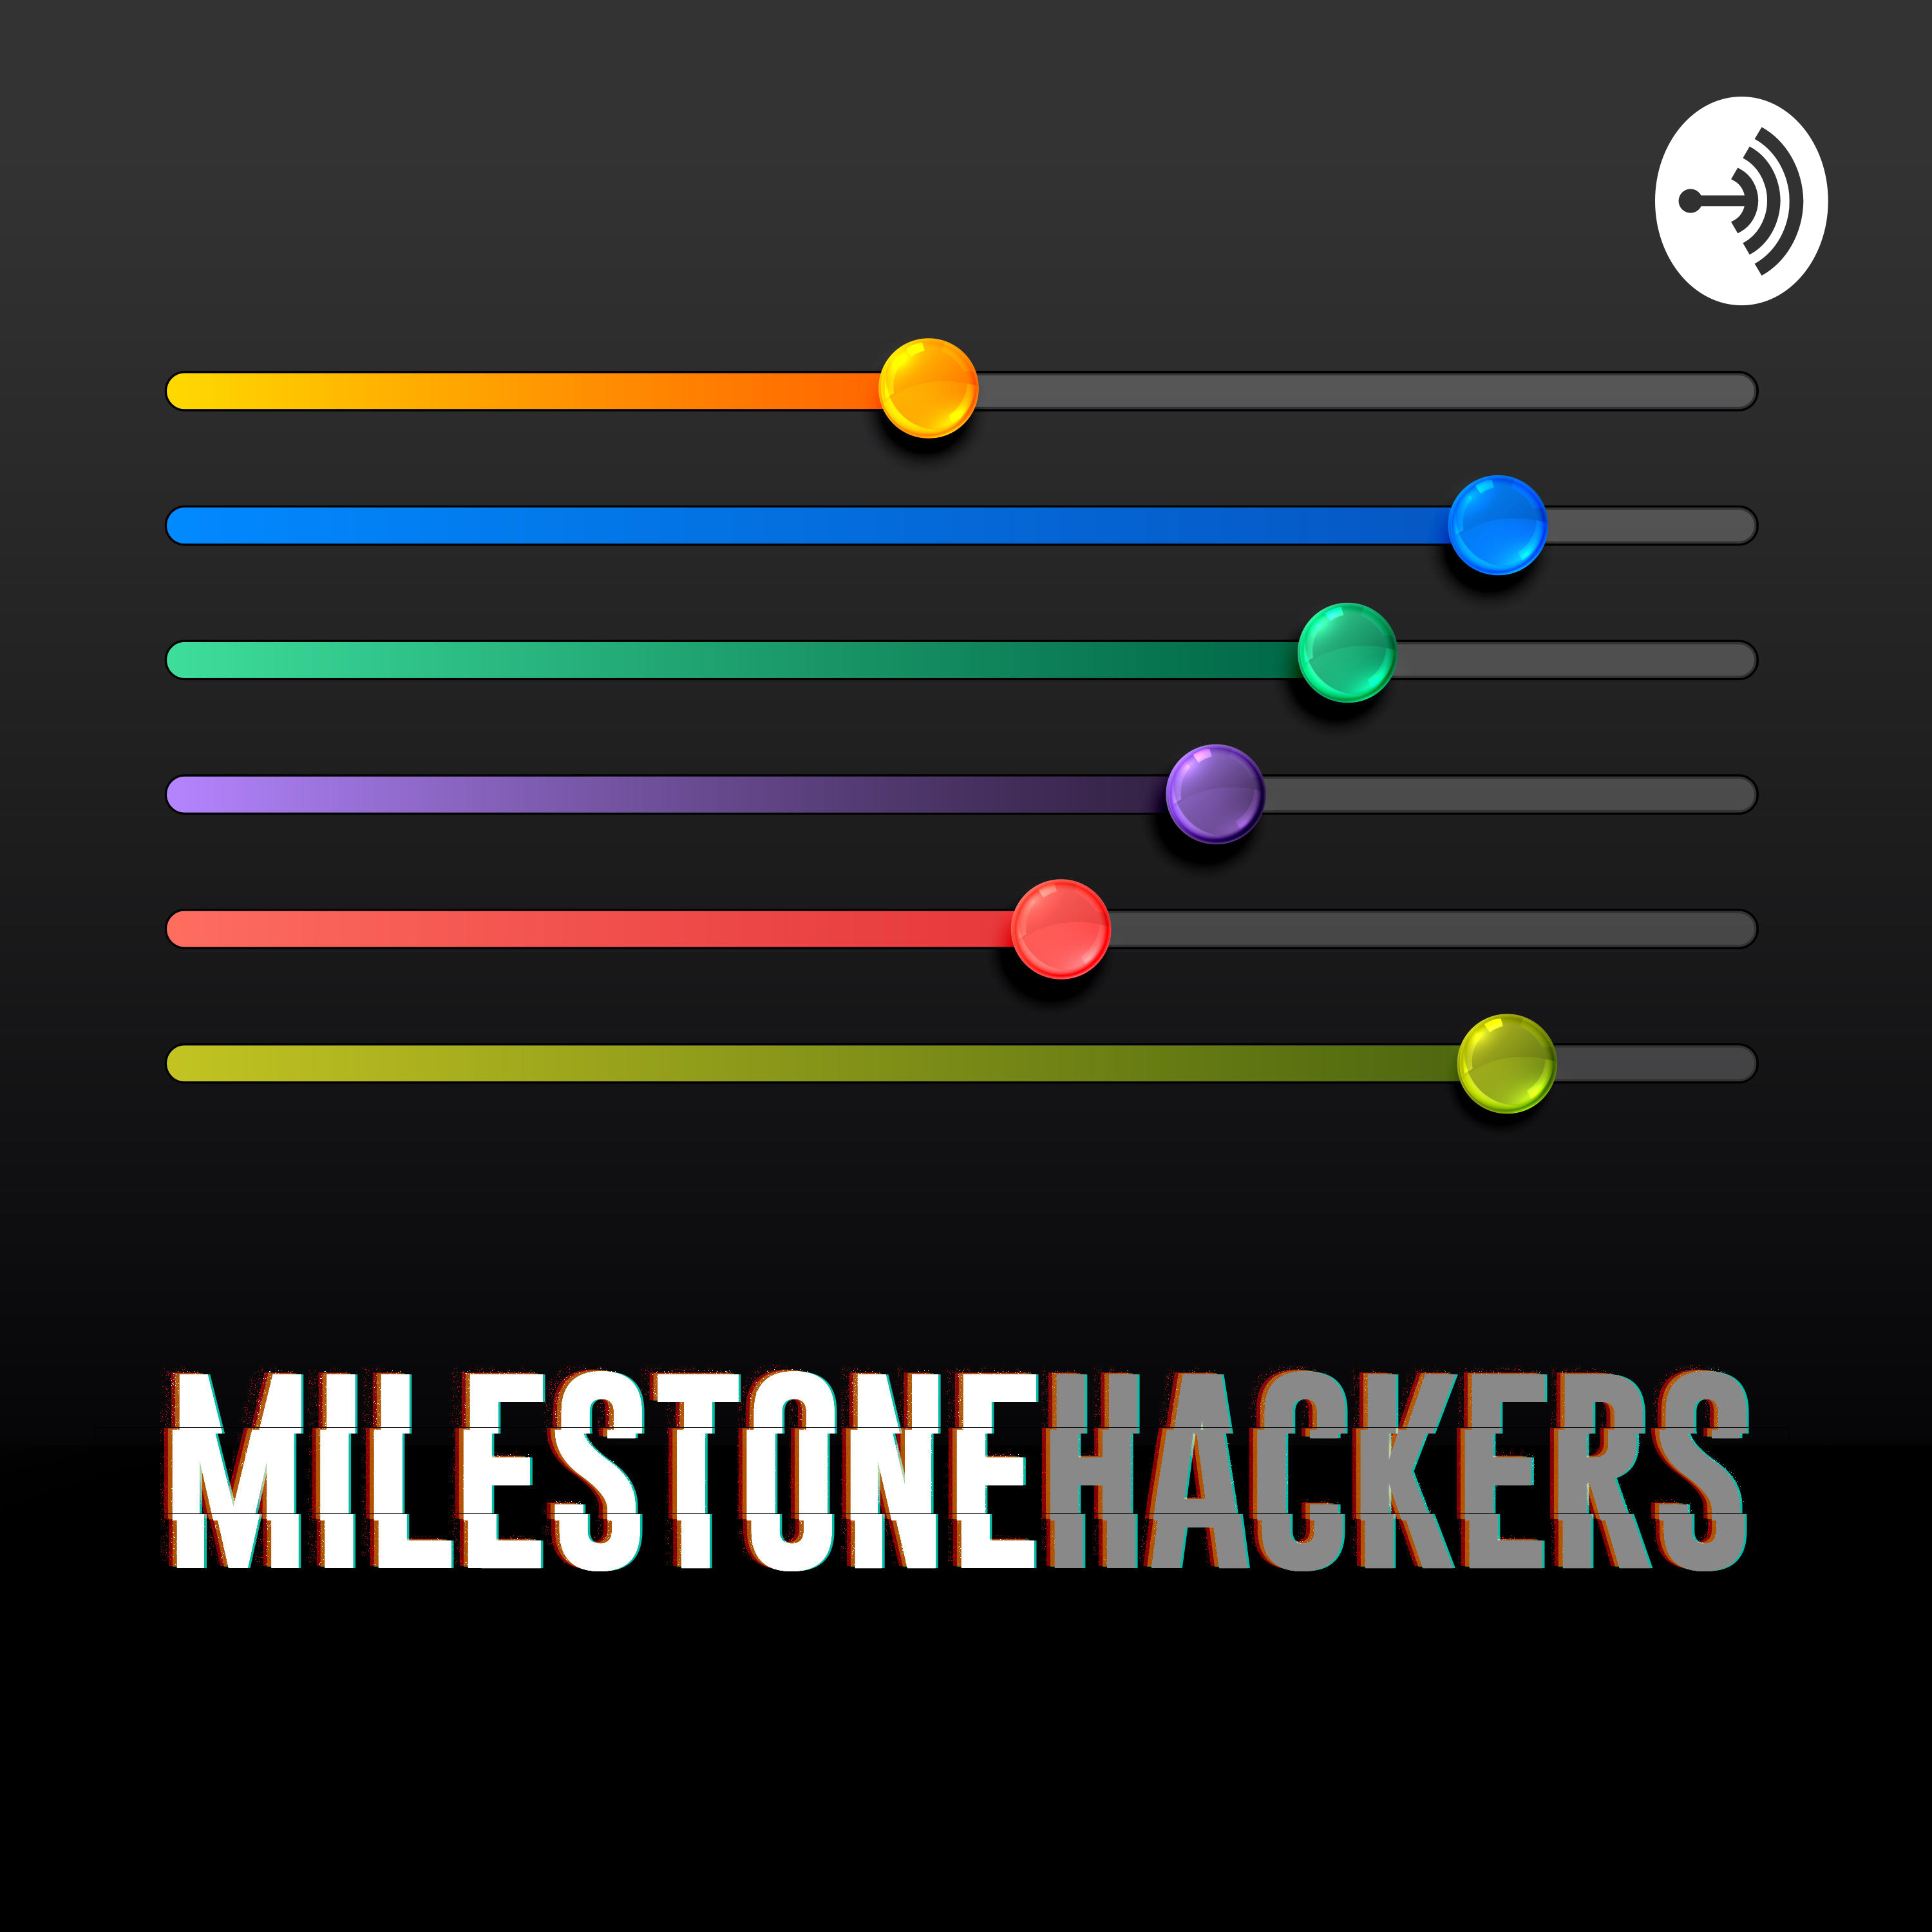 The Milestone Hackers Podcast on Smash Notes